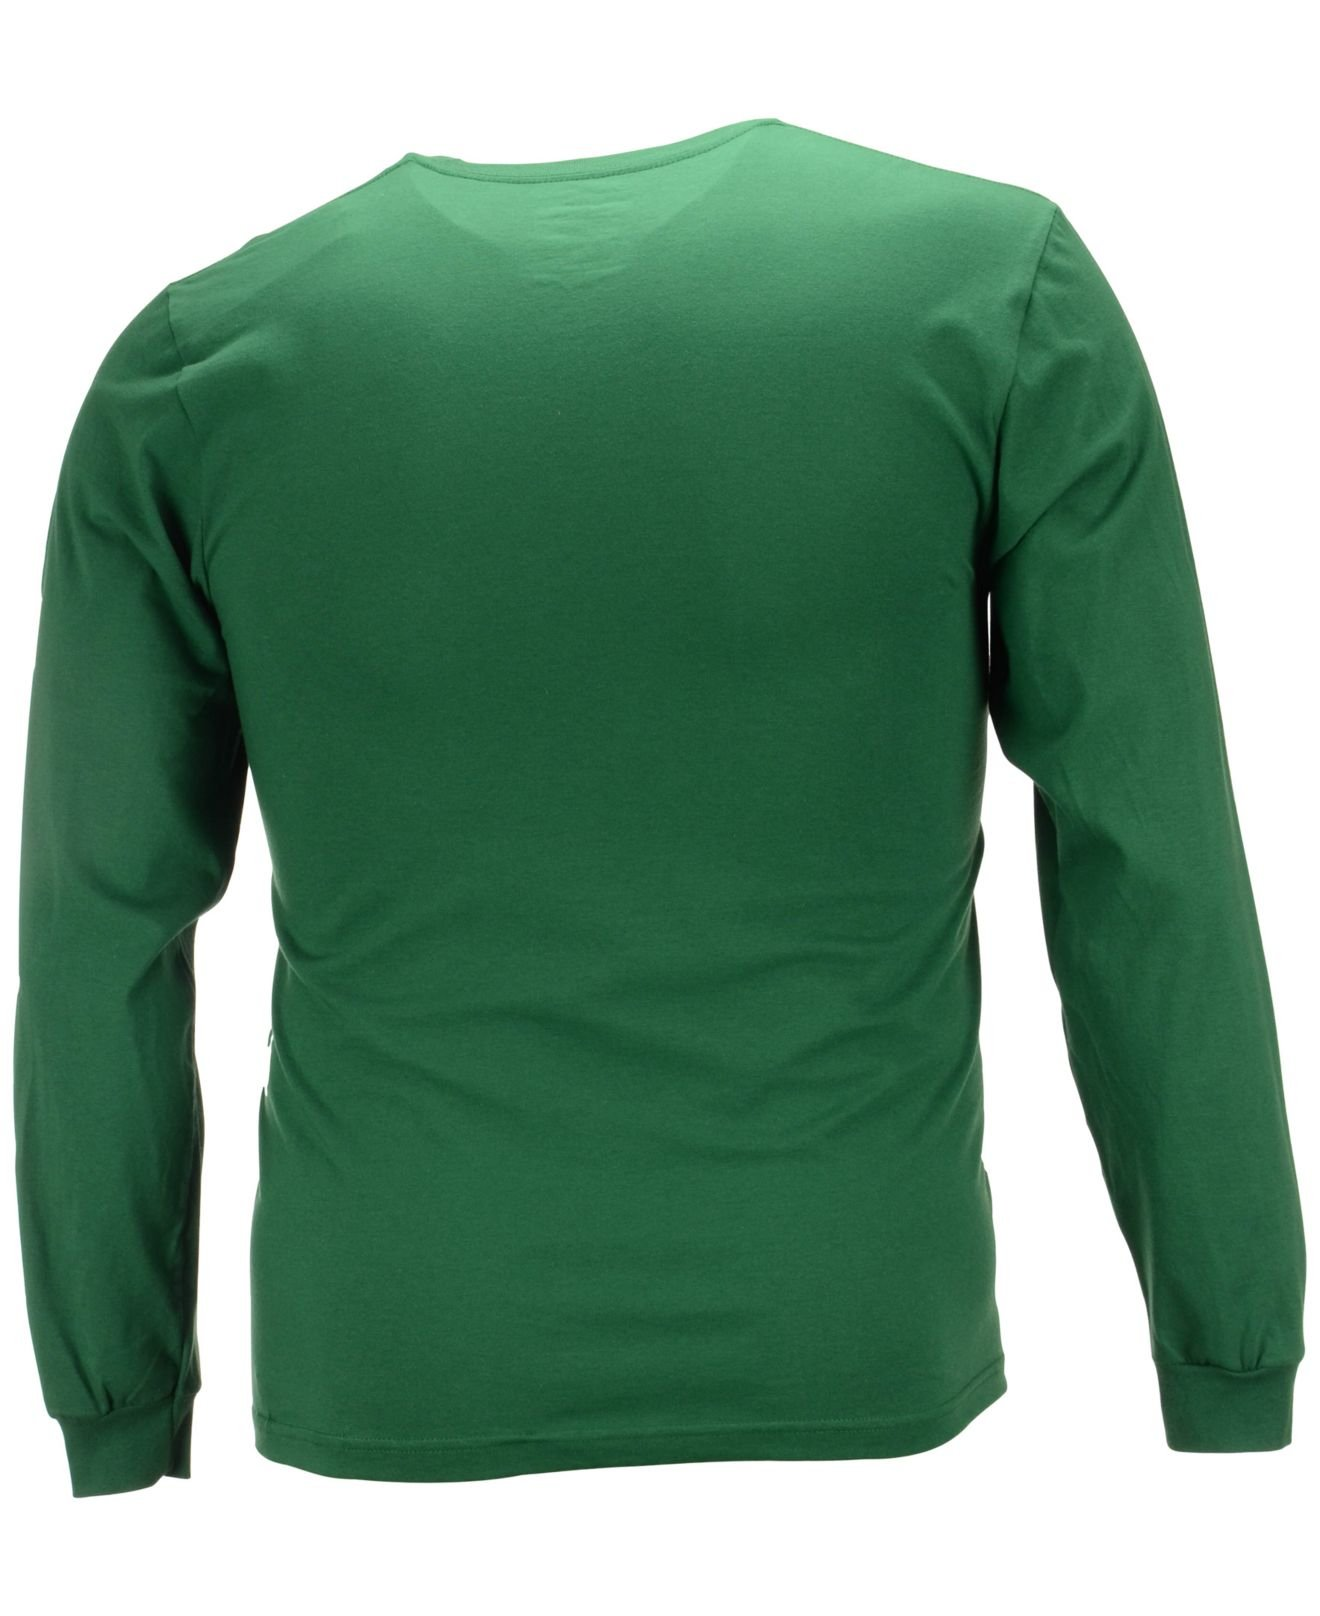 Find womens green long sleeve shirt at ShopStyle. Shop the latest collection of womens green long sleeve shirt from the most popular stores - all in.